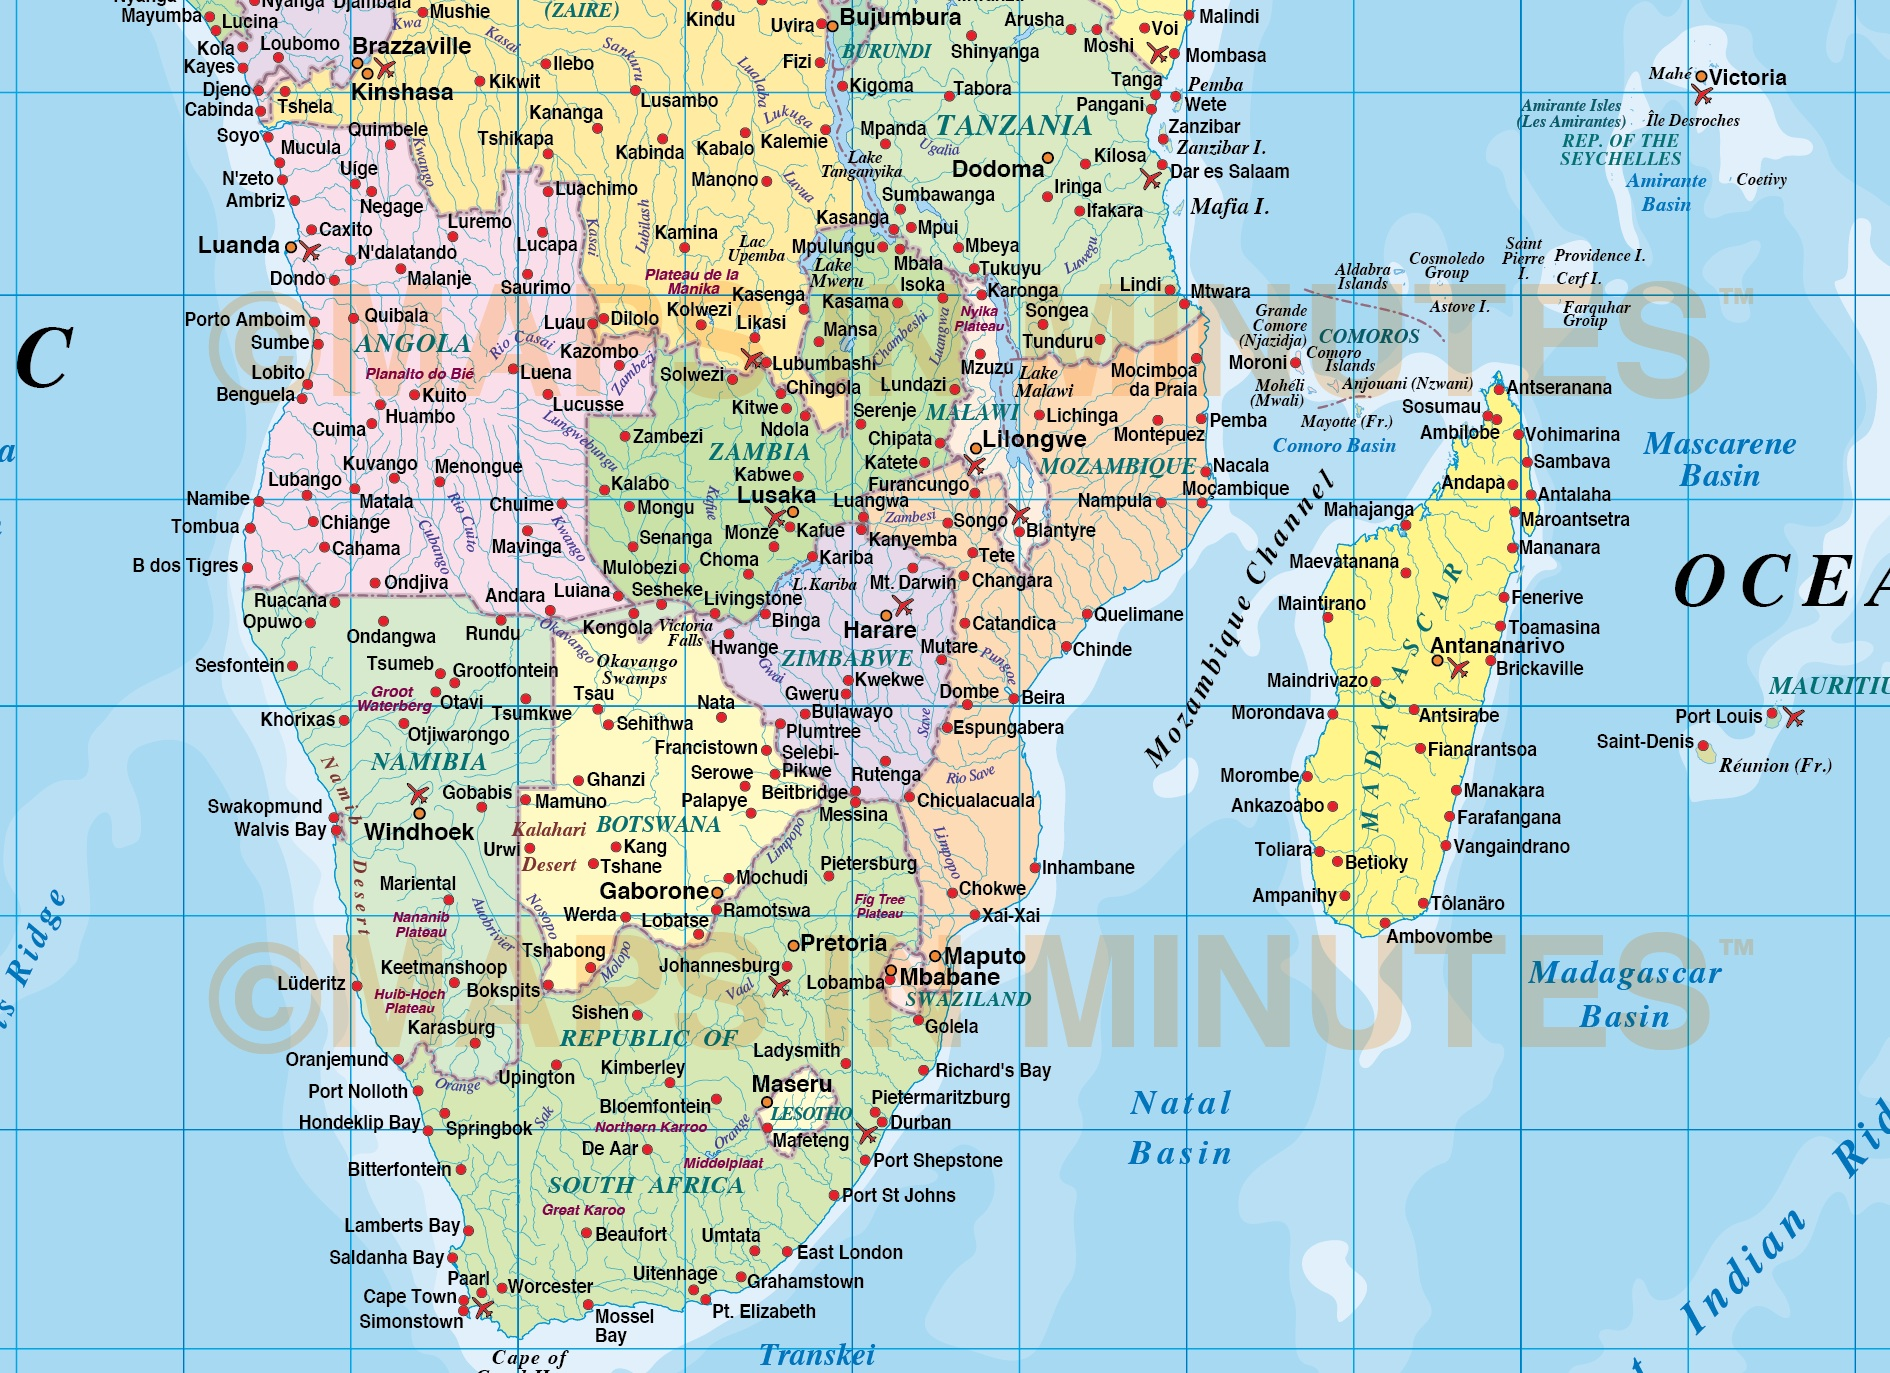 Digital vector map of africa region political with ocean contours africa continent country map with sea contours 10m scale detail gumiabroncs Gallery